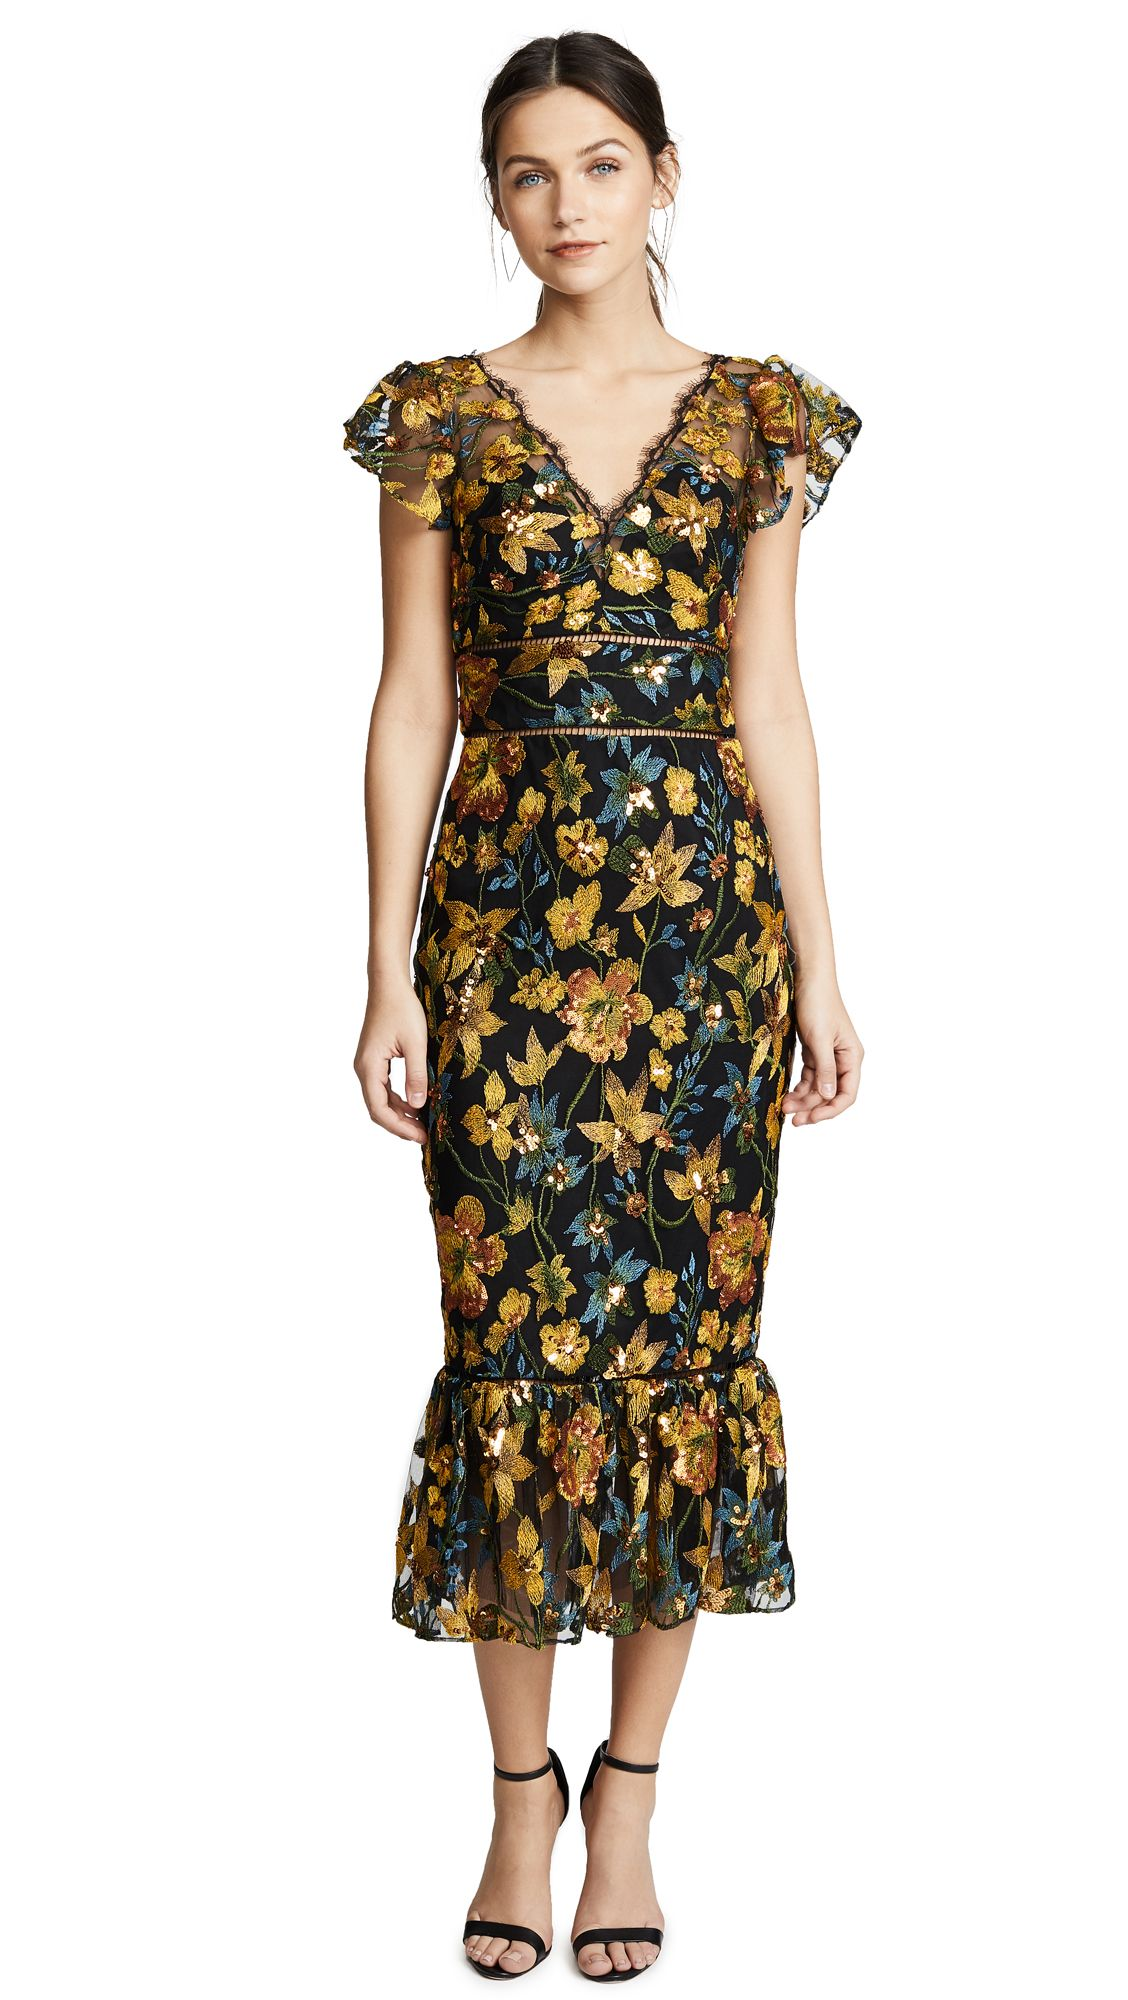 c46f63c9 MARCHESA NOTTE EMBROIDERED COCKTAIL DRESS WITH FLUTTER SLEEVES. # marchesanotte #cloth #